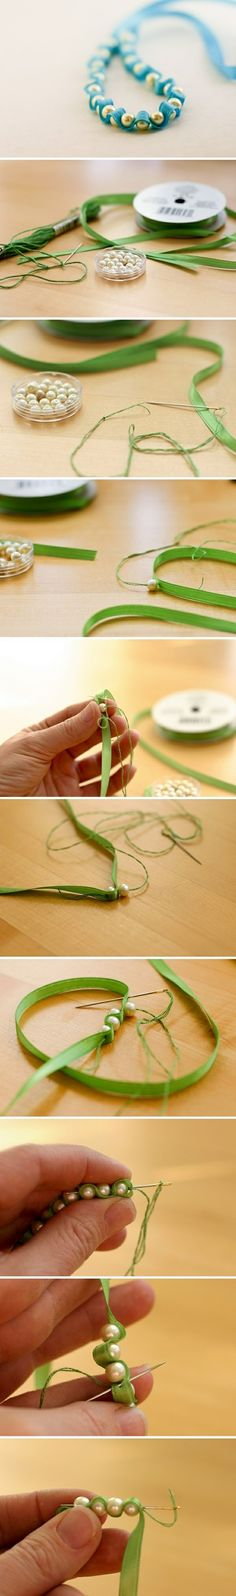 If I can figure a way to make this work with 22 gauge wire I may have the makings of a napkin ring.